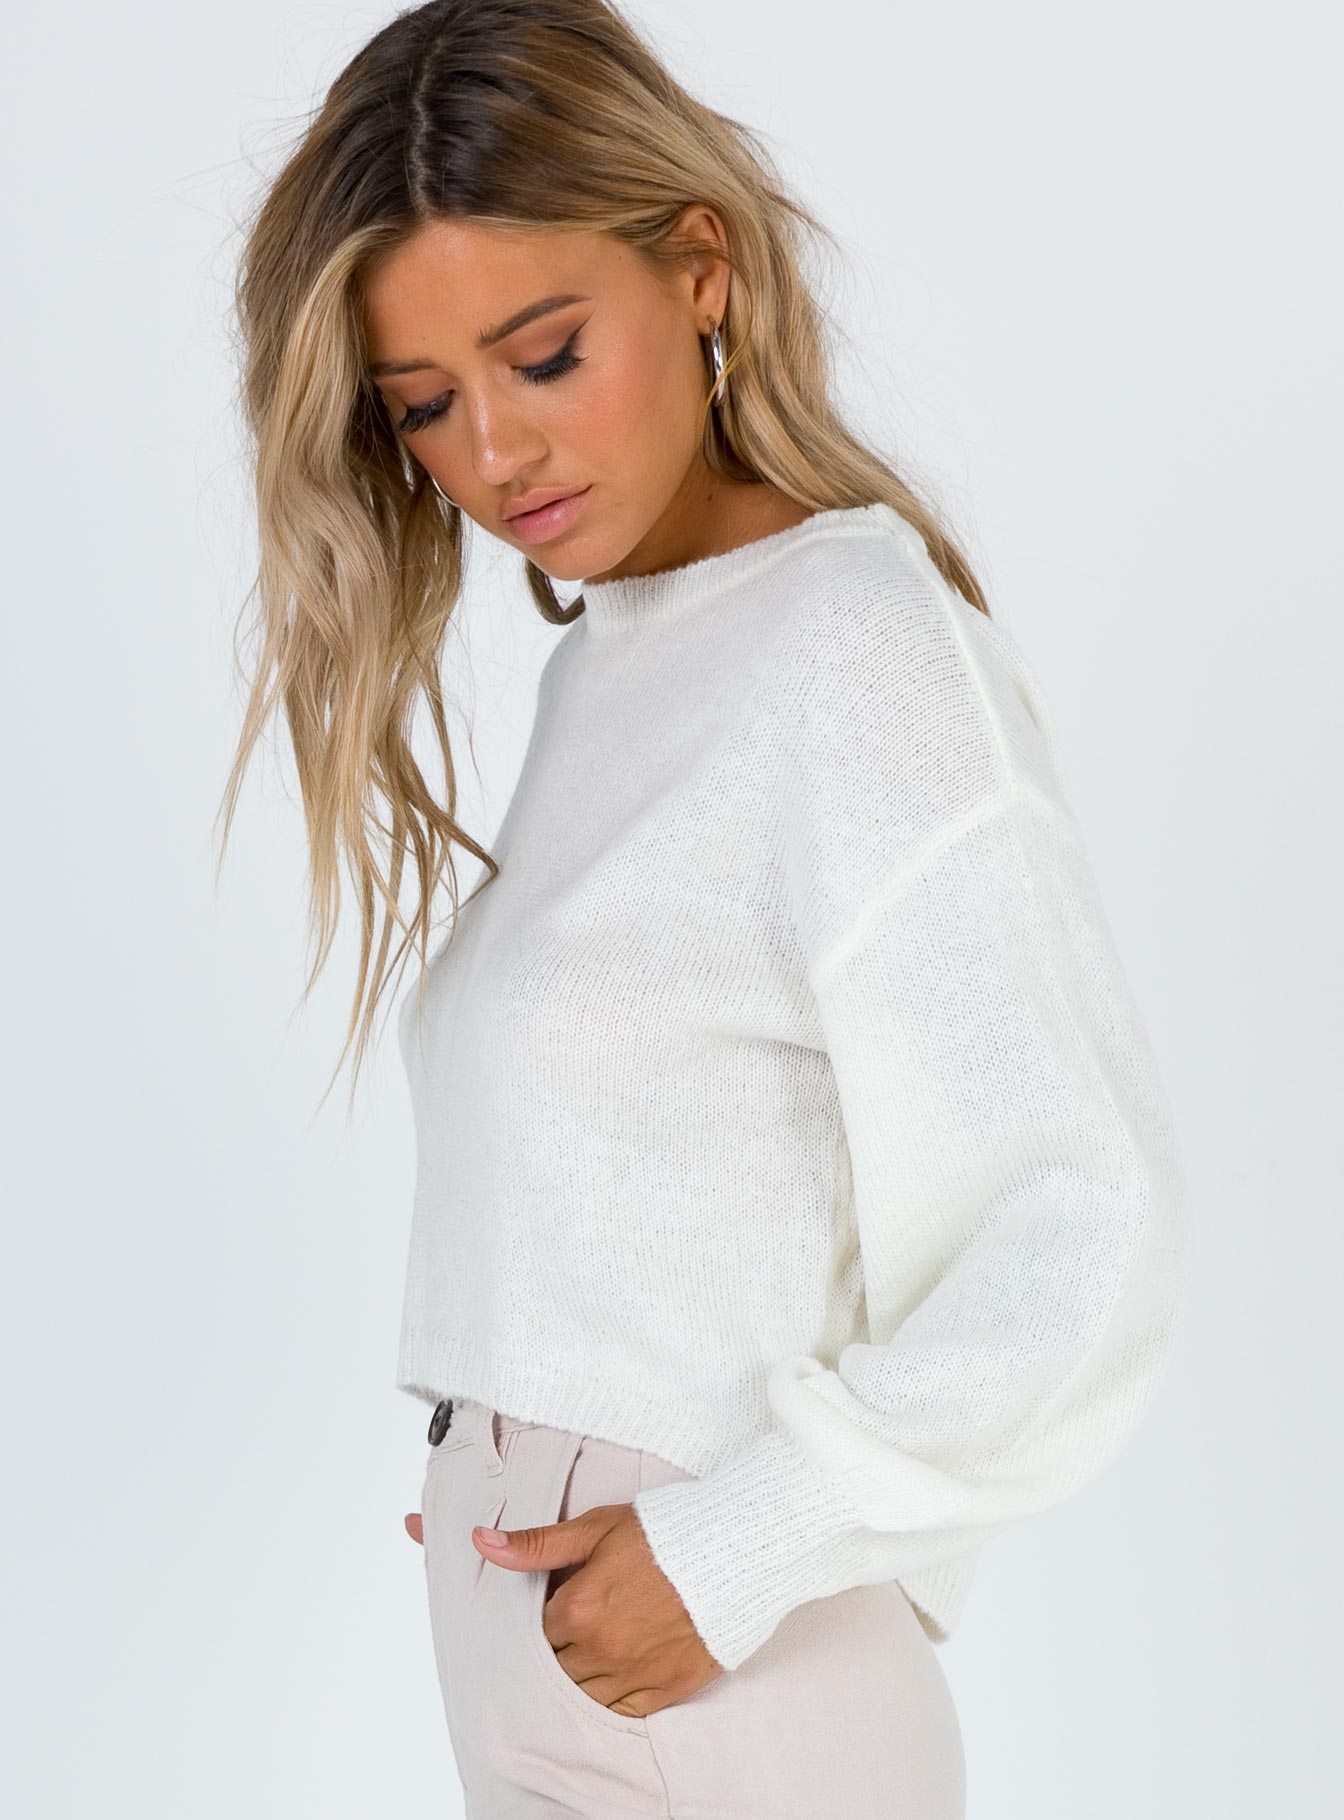 Neveah Sweater